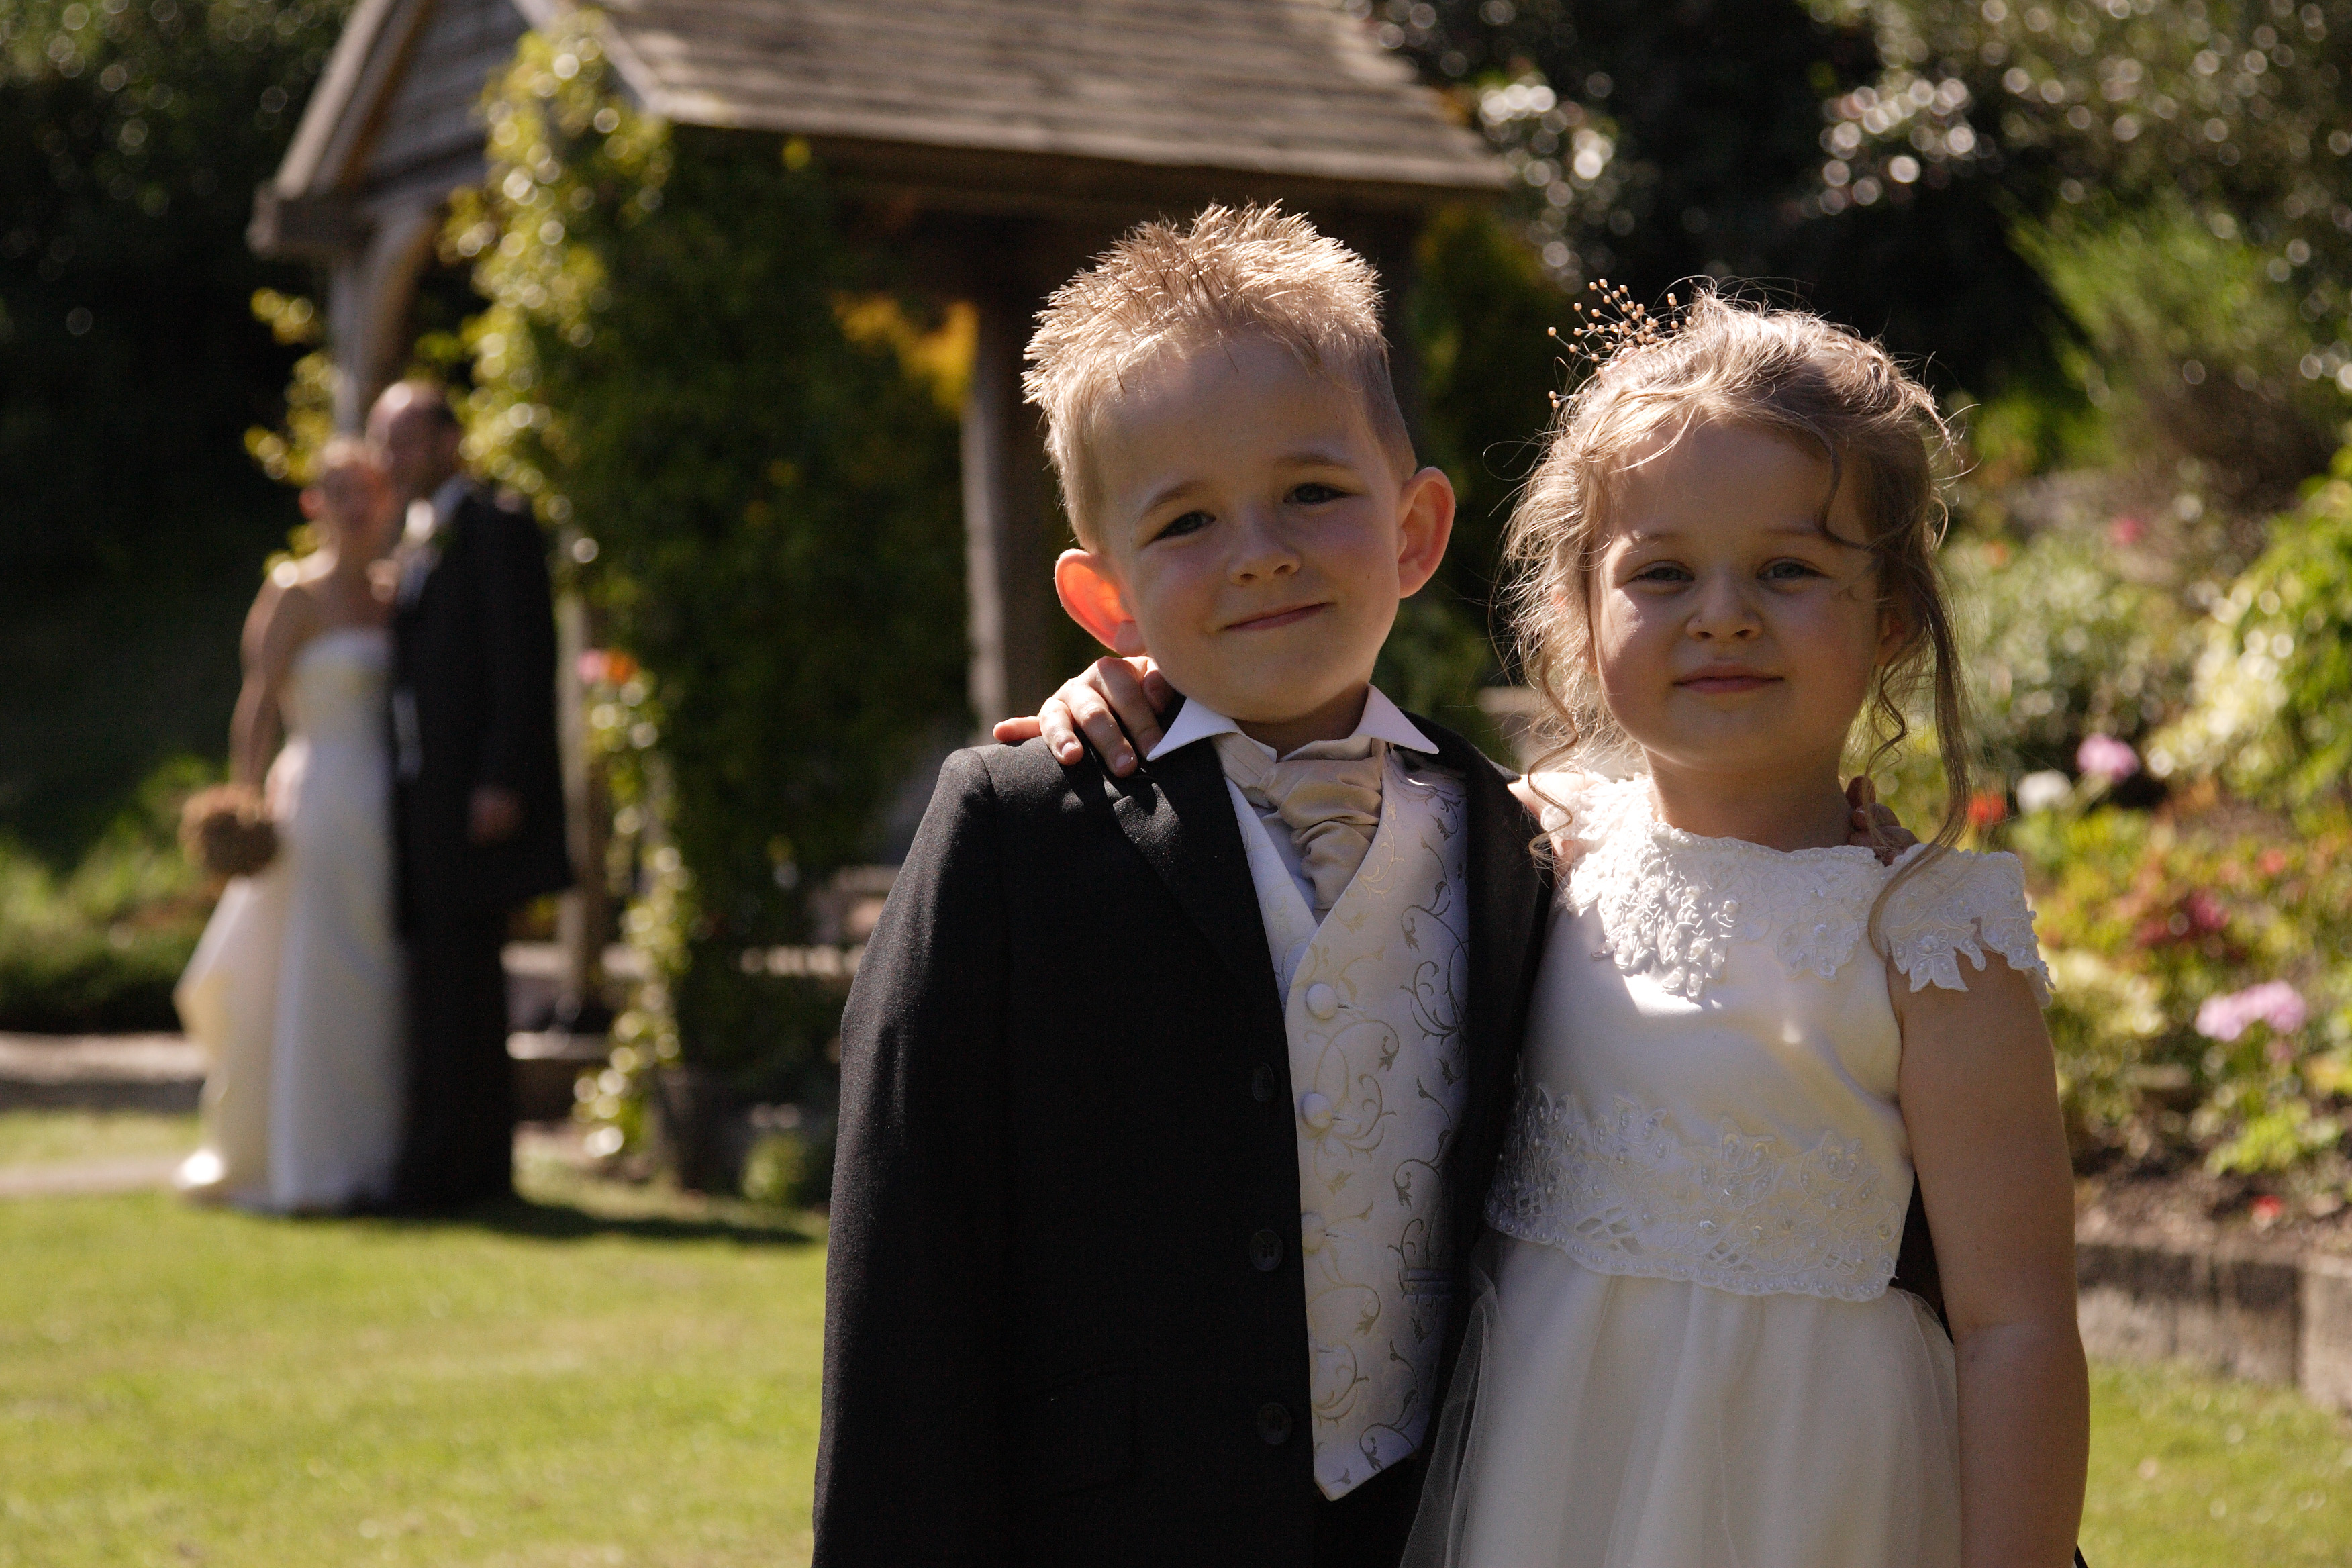 Wedding Photographer Crawley, Sussex